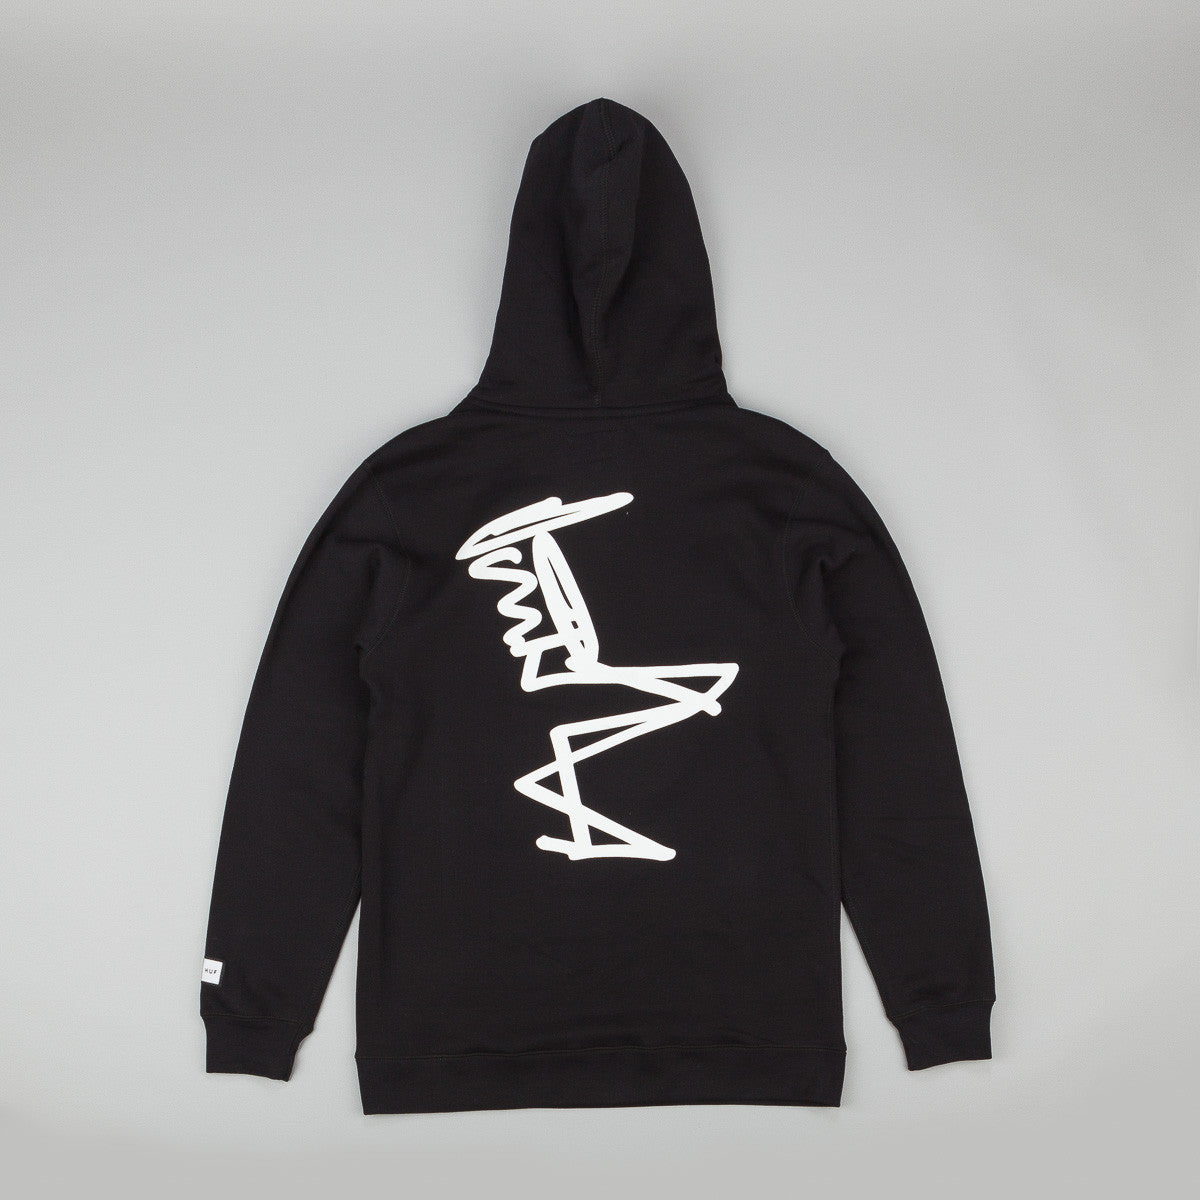 HUF X Stay High 149 Pullover Hooded Sweatshirt - Black